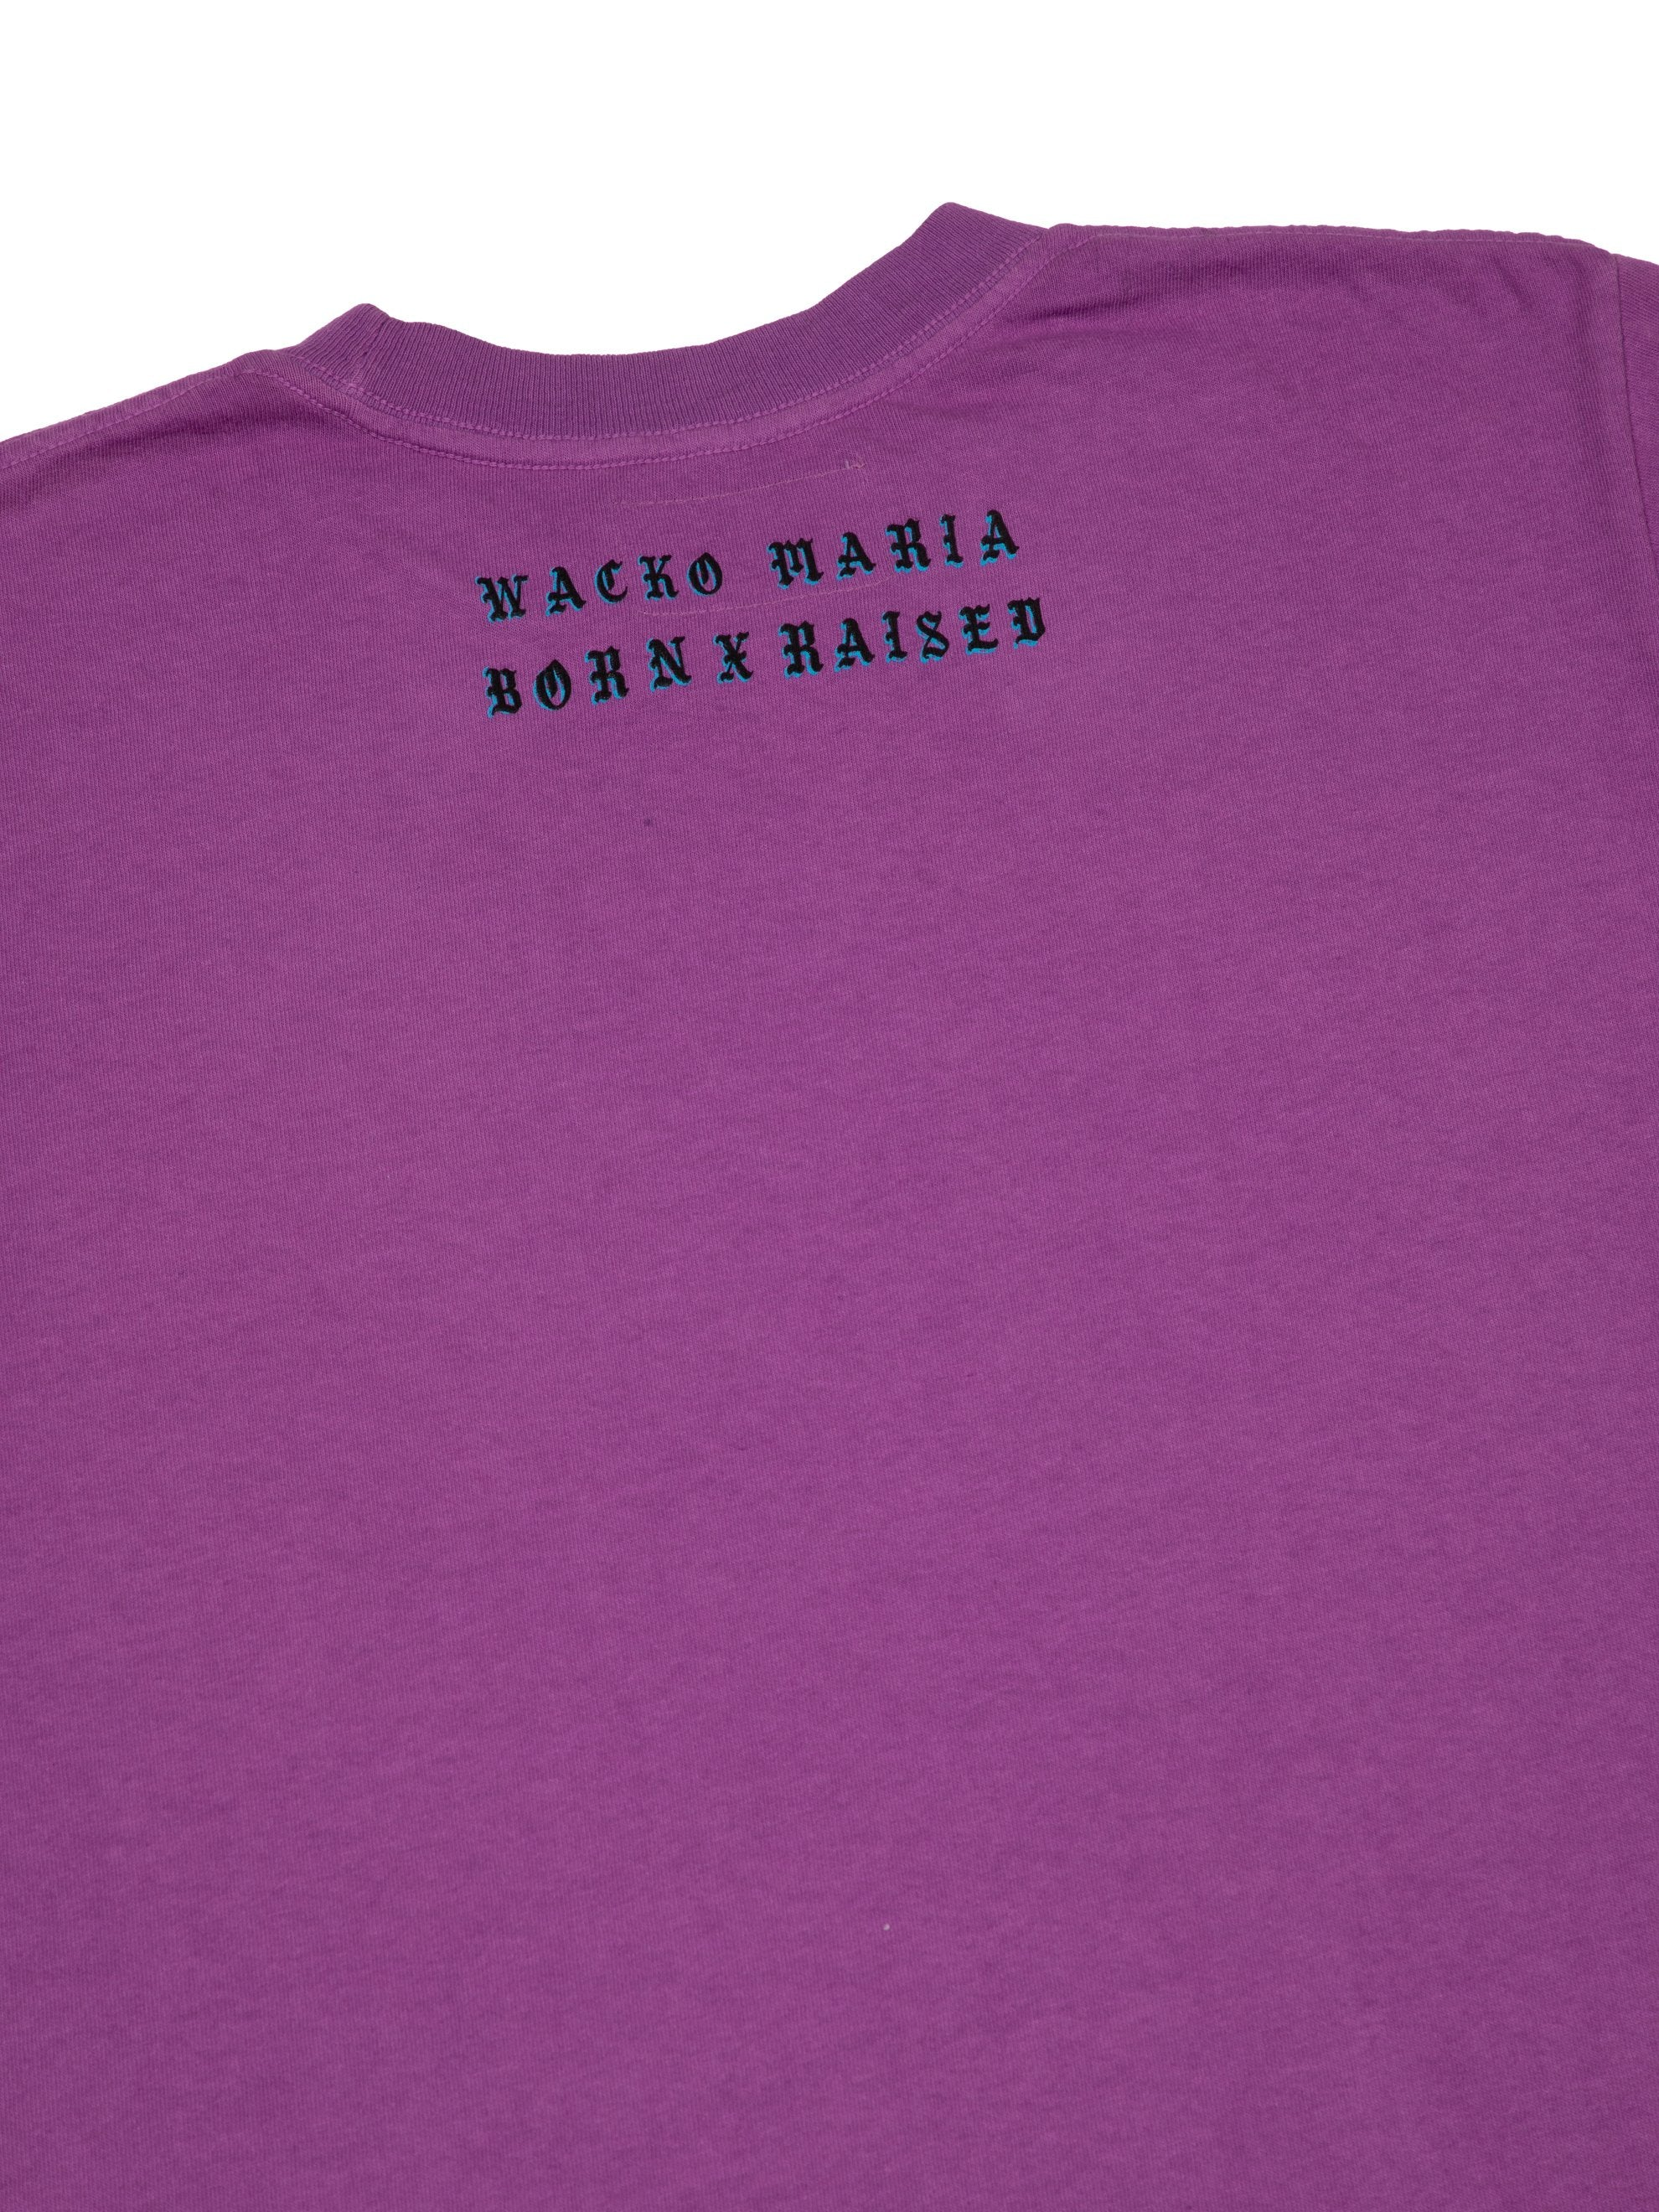 Wacko Born x Raised Chato Tee